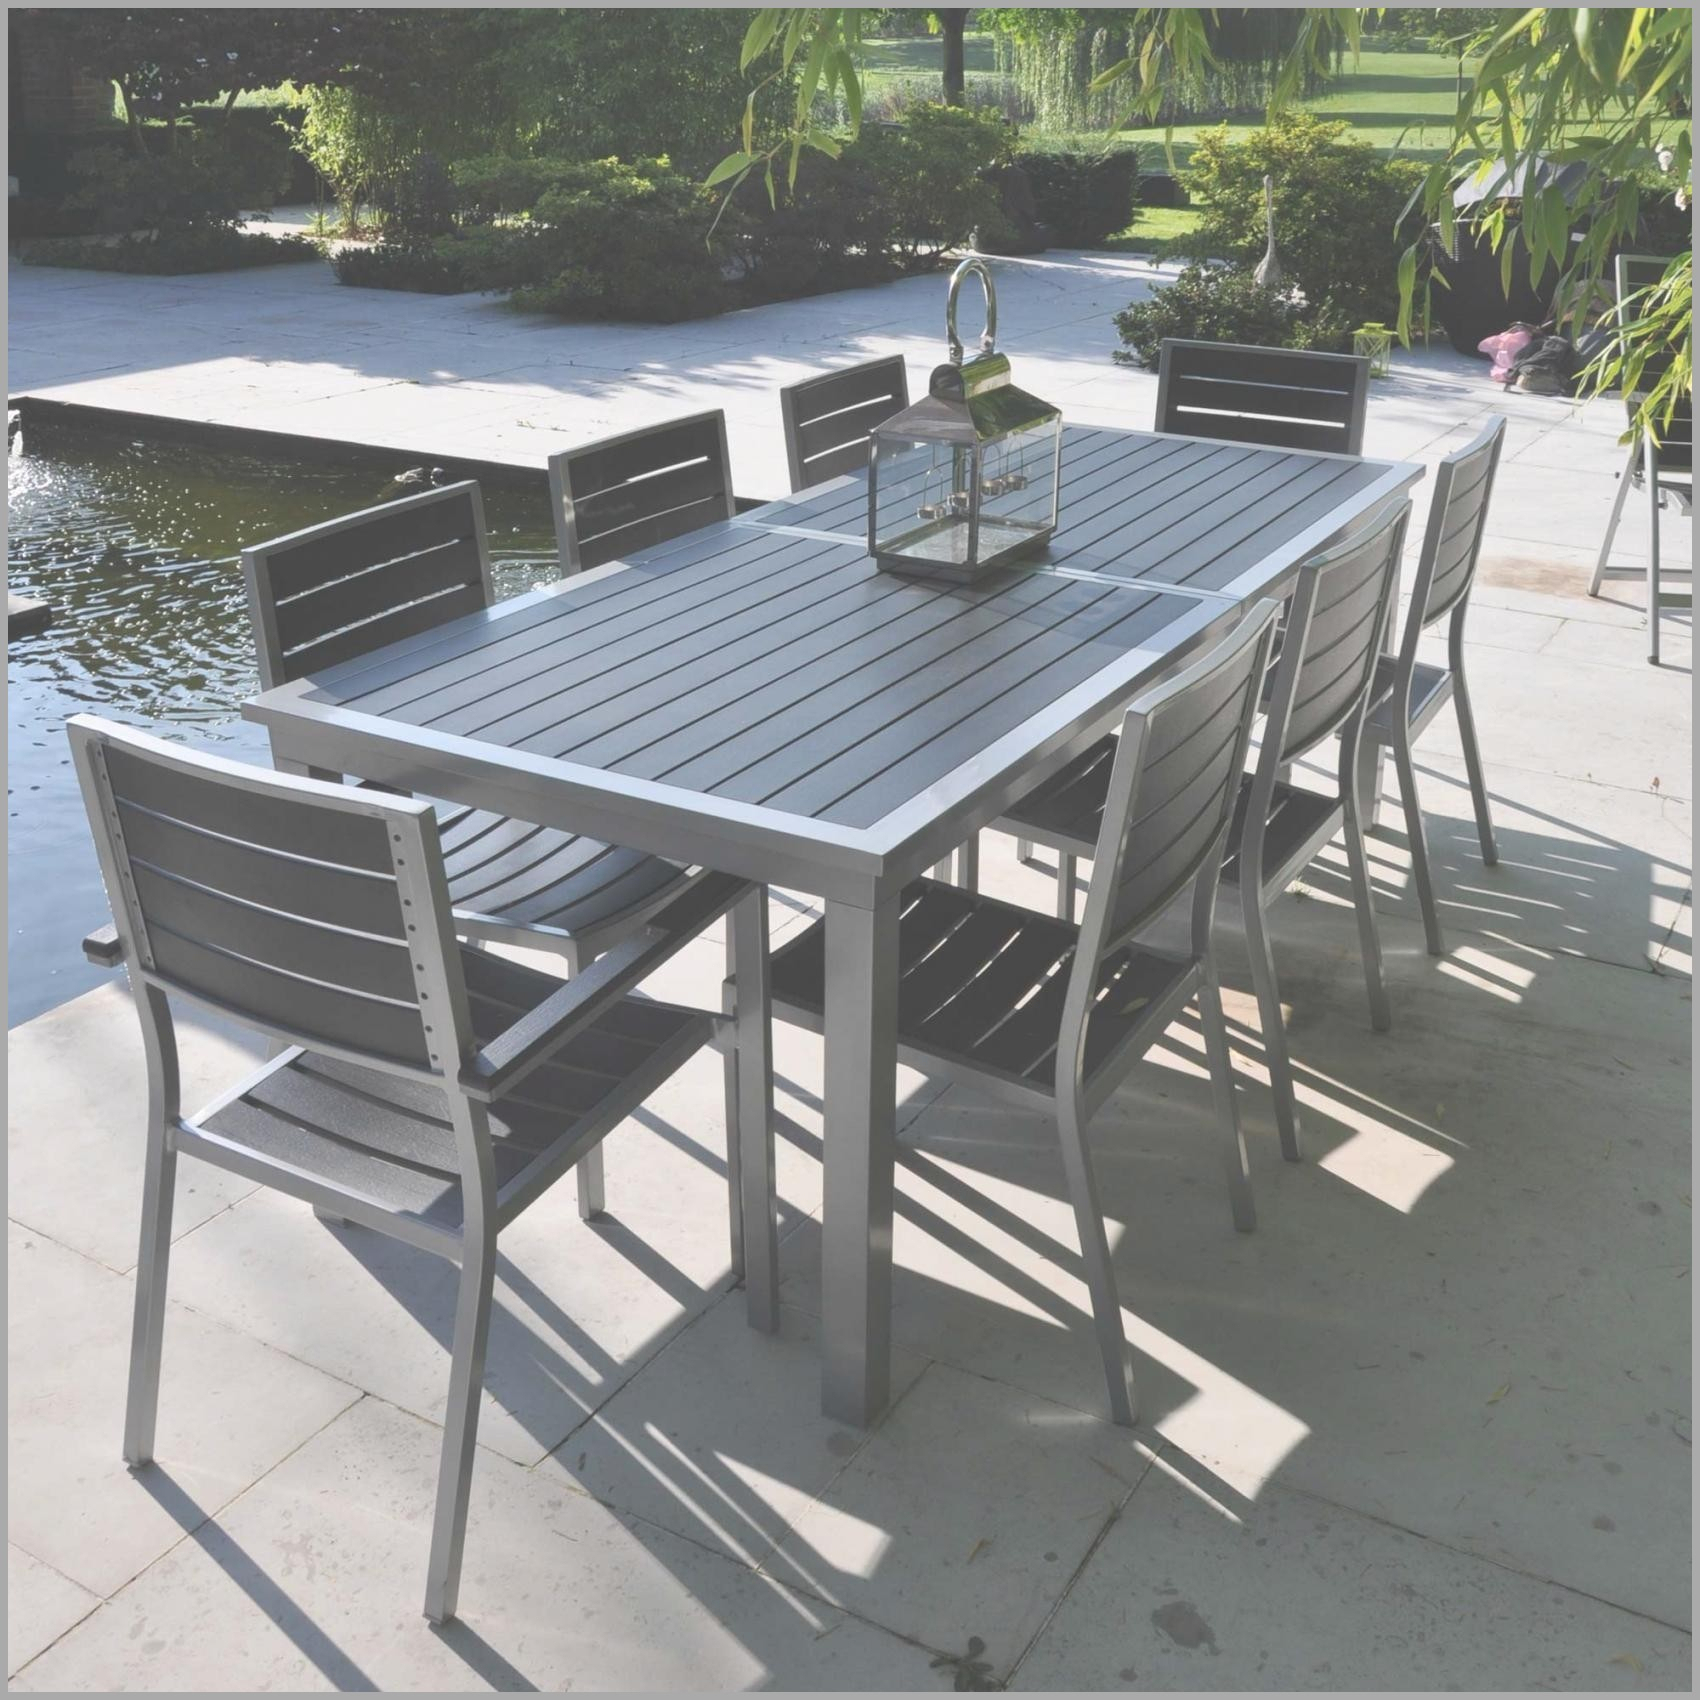 Banc De Jardin Jardiland New Table Aluminium Charmant Banc ... à Table De Jardin Jardiland